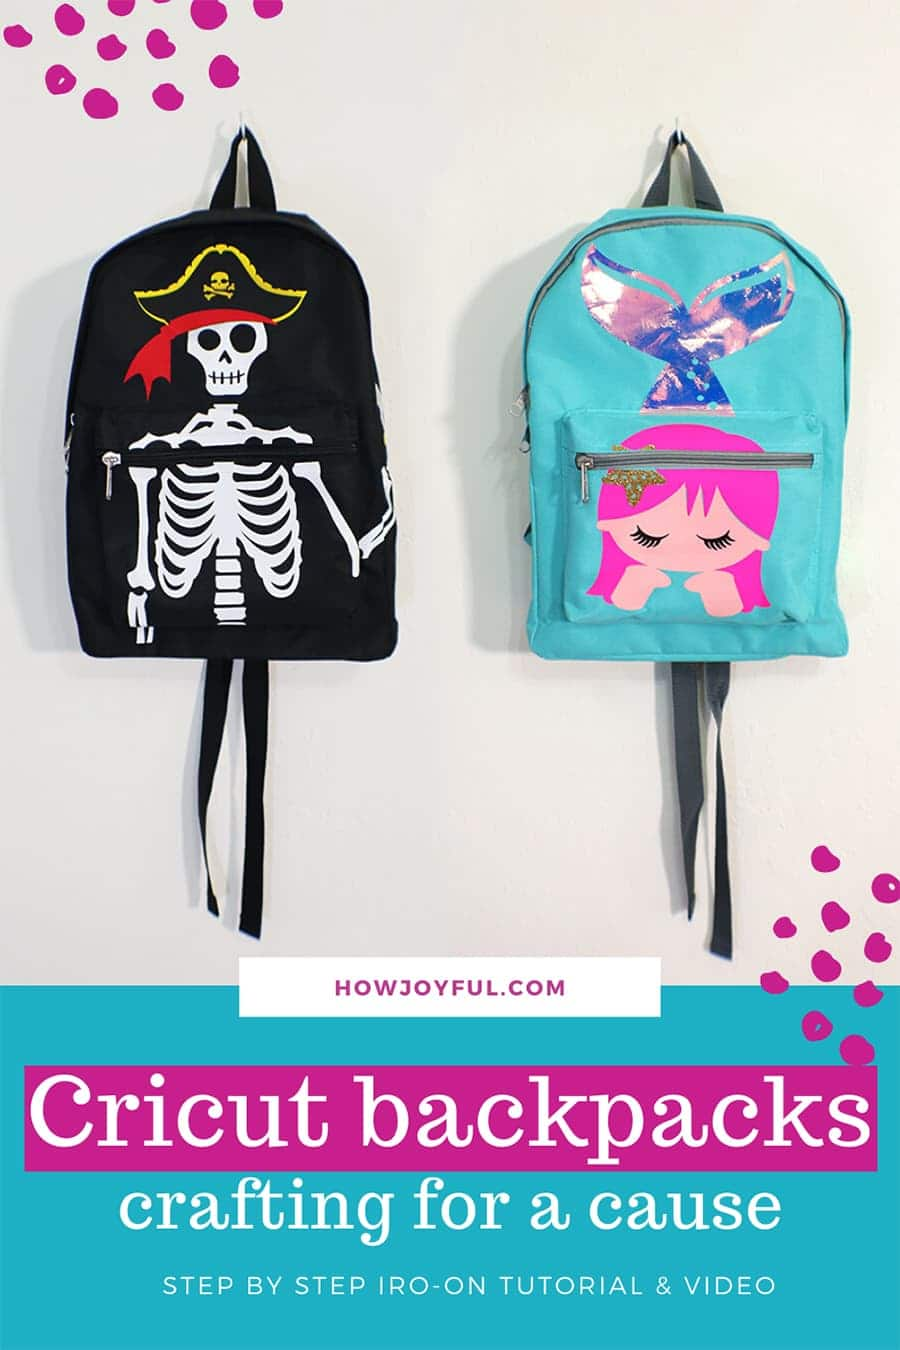 cricut backpacks